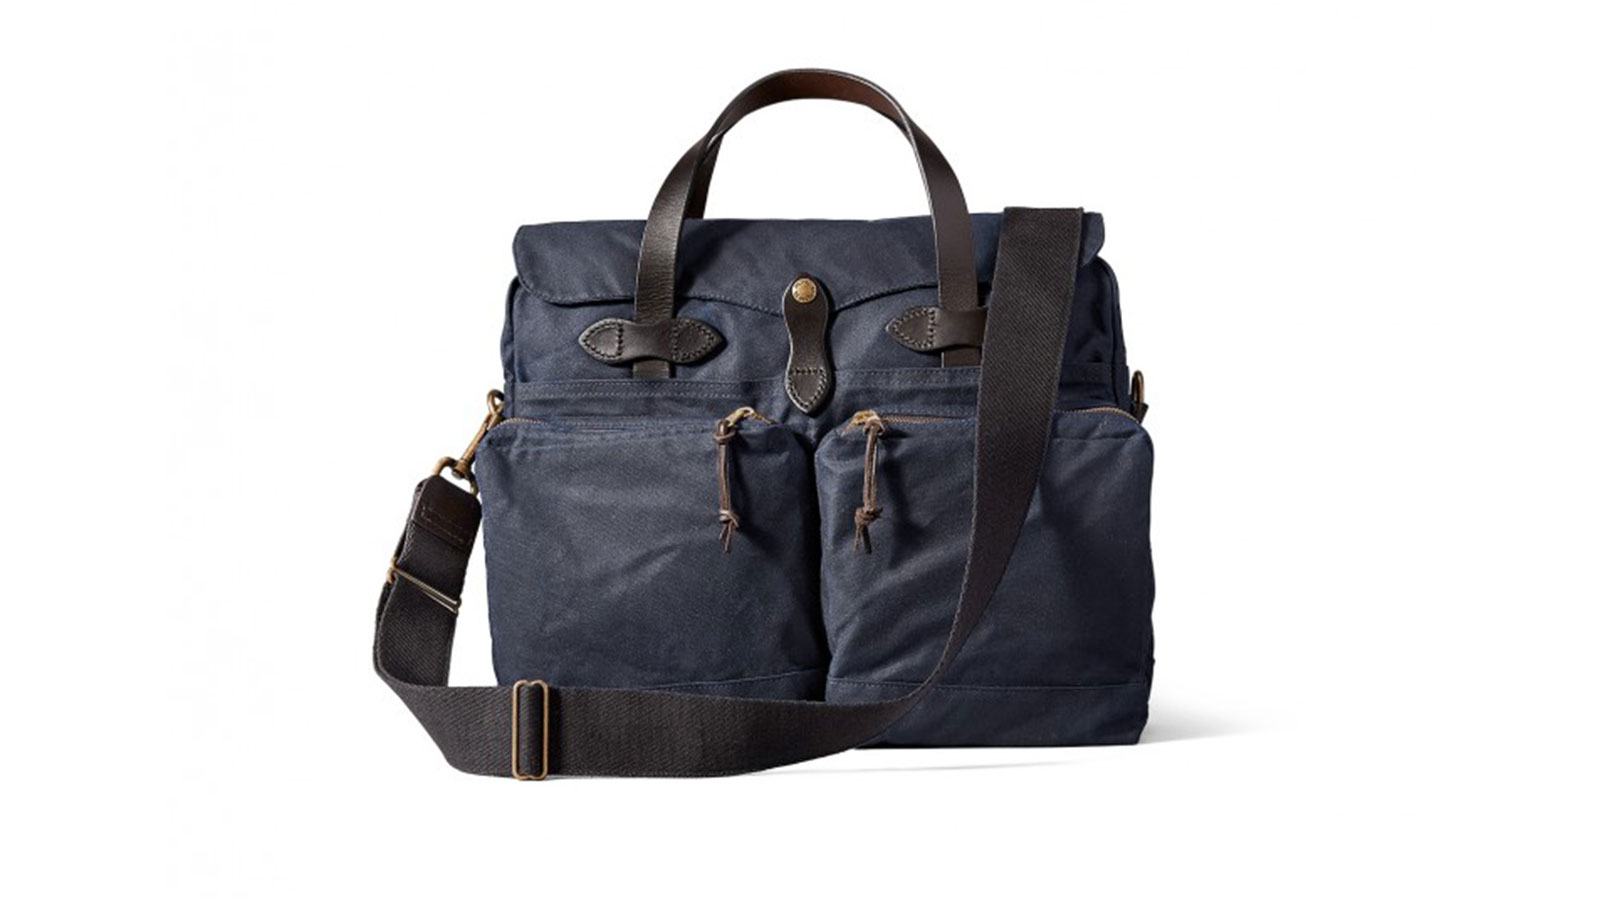 Filson 24-hour Tin Briefcase Messenger Bag | best messenger bags for men